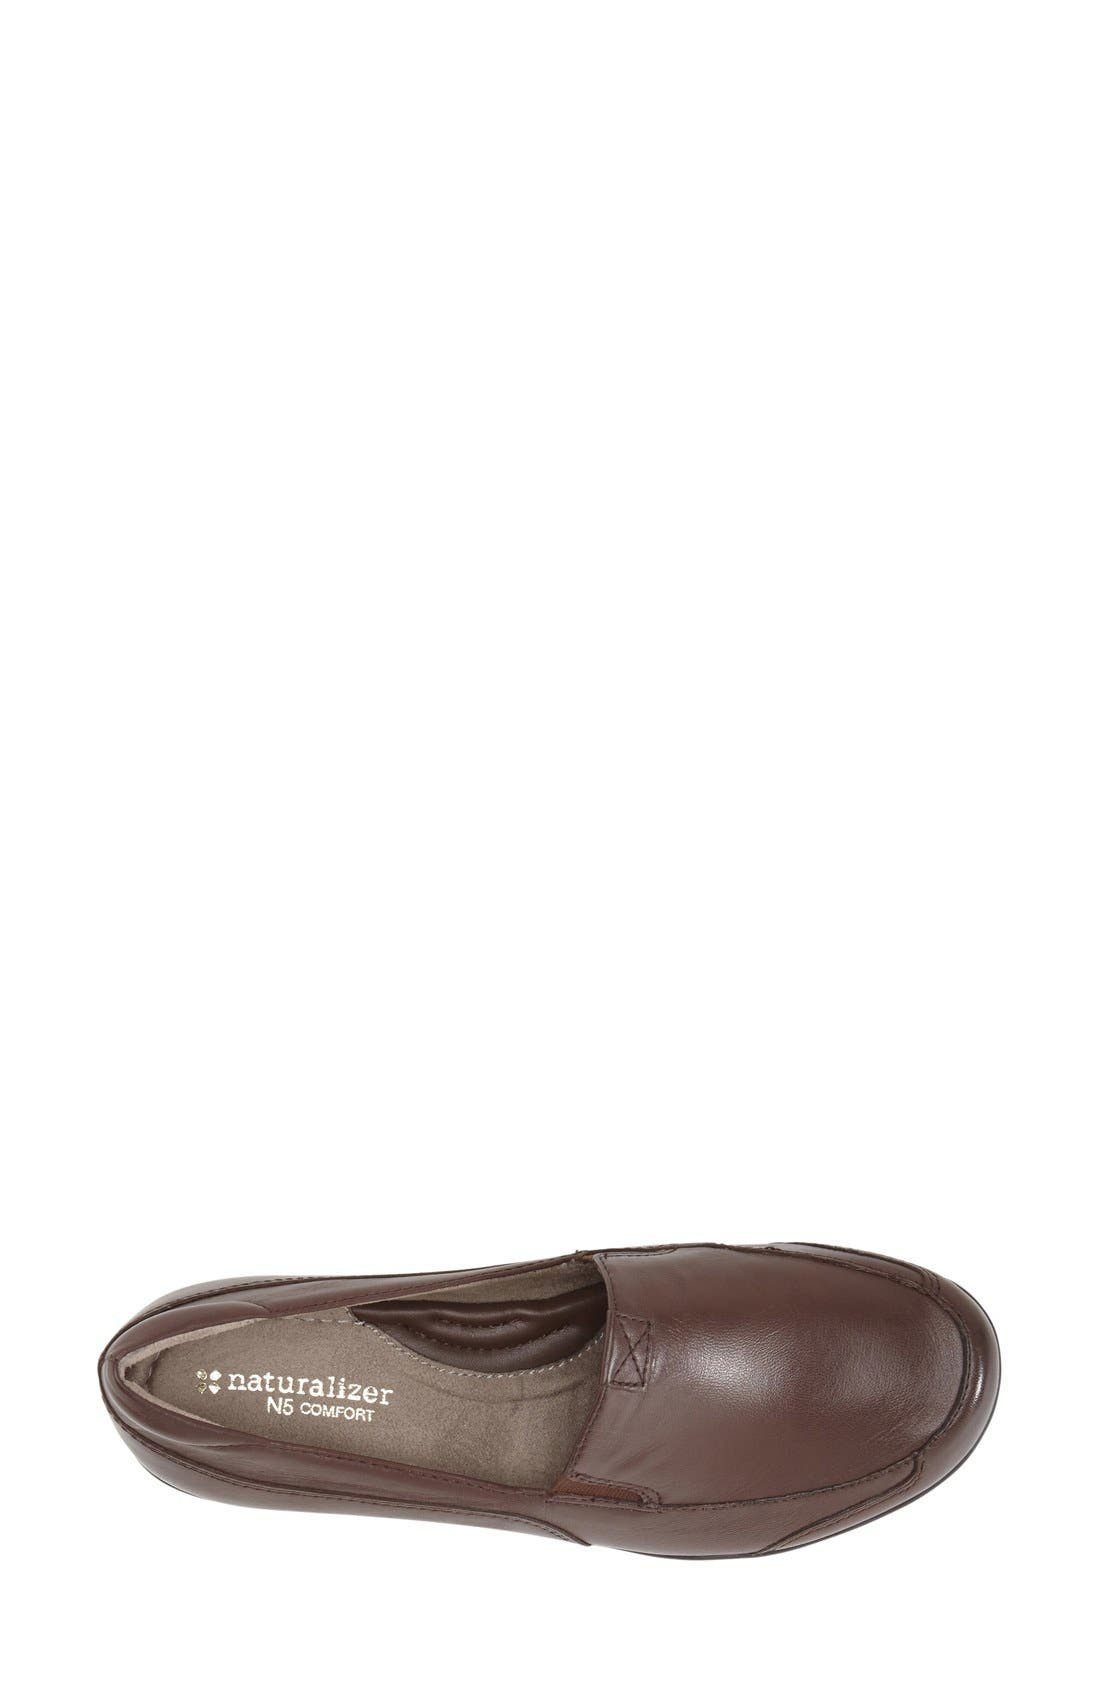 'Channing' Loafer,                             Alternate thumbnail 3, color,                             Bridal Brown